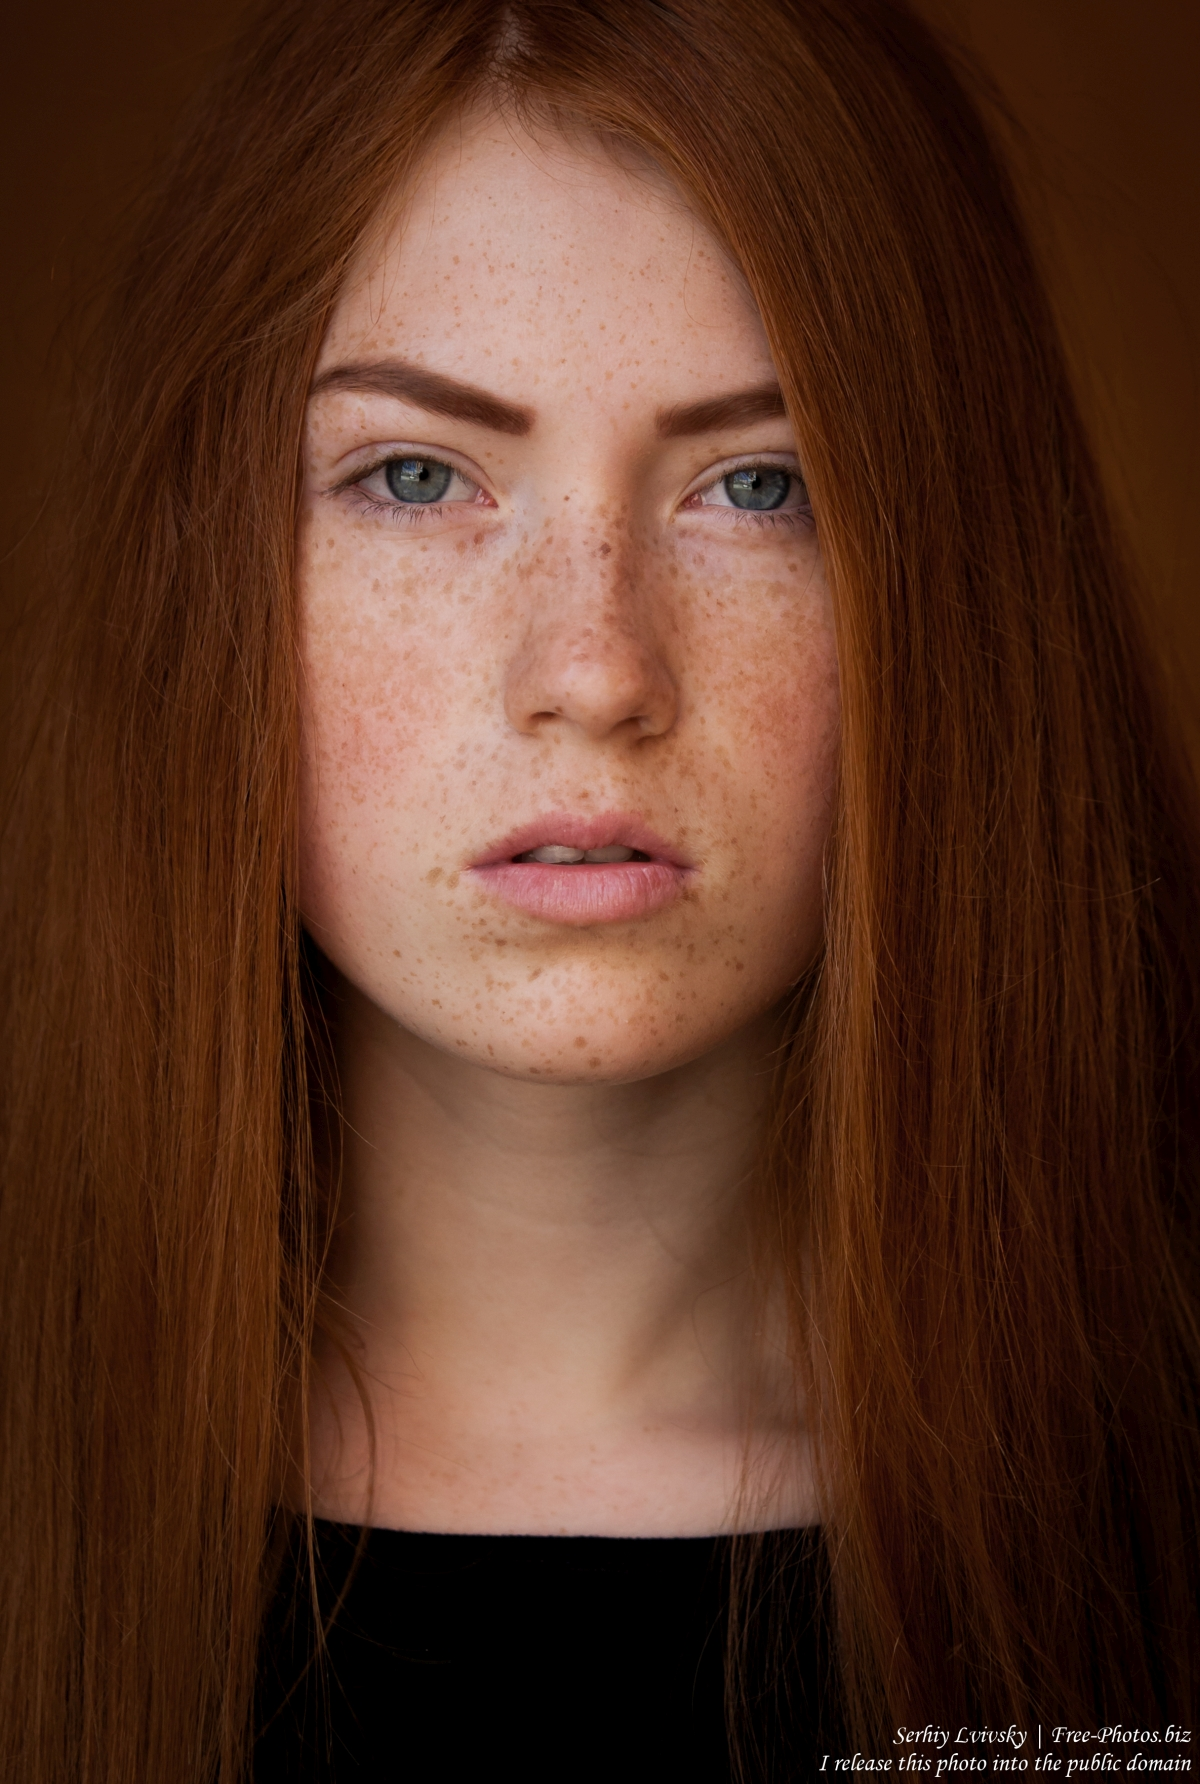 a_15-year-old_red-haired_catholic_girl_photographed_by_serhiy_lvivsky_in_august_2015_11